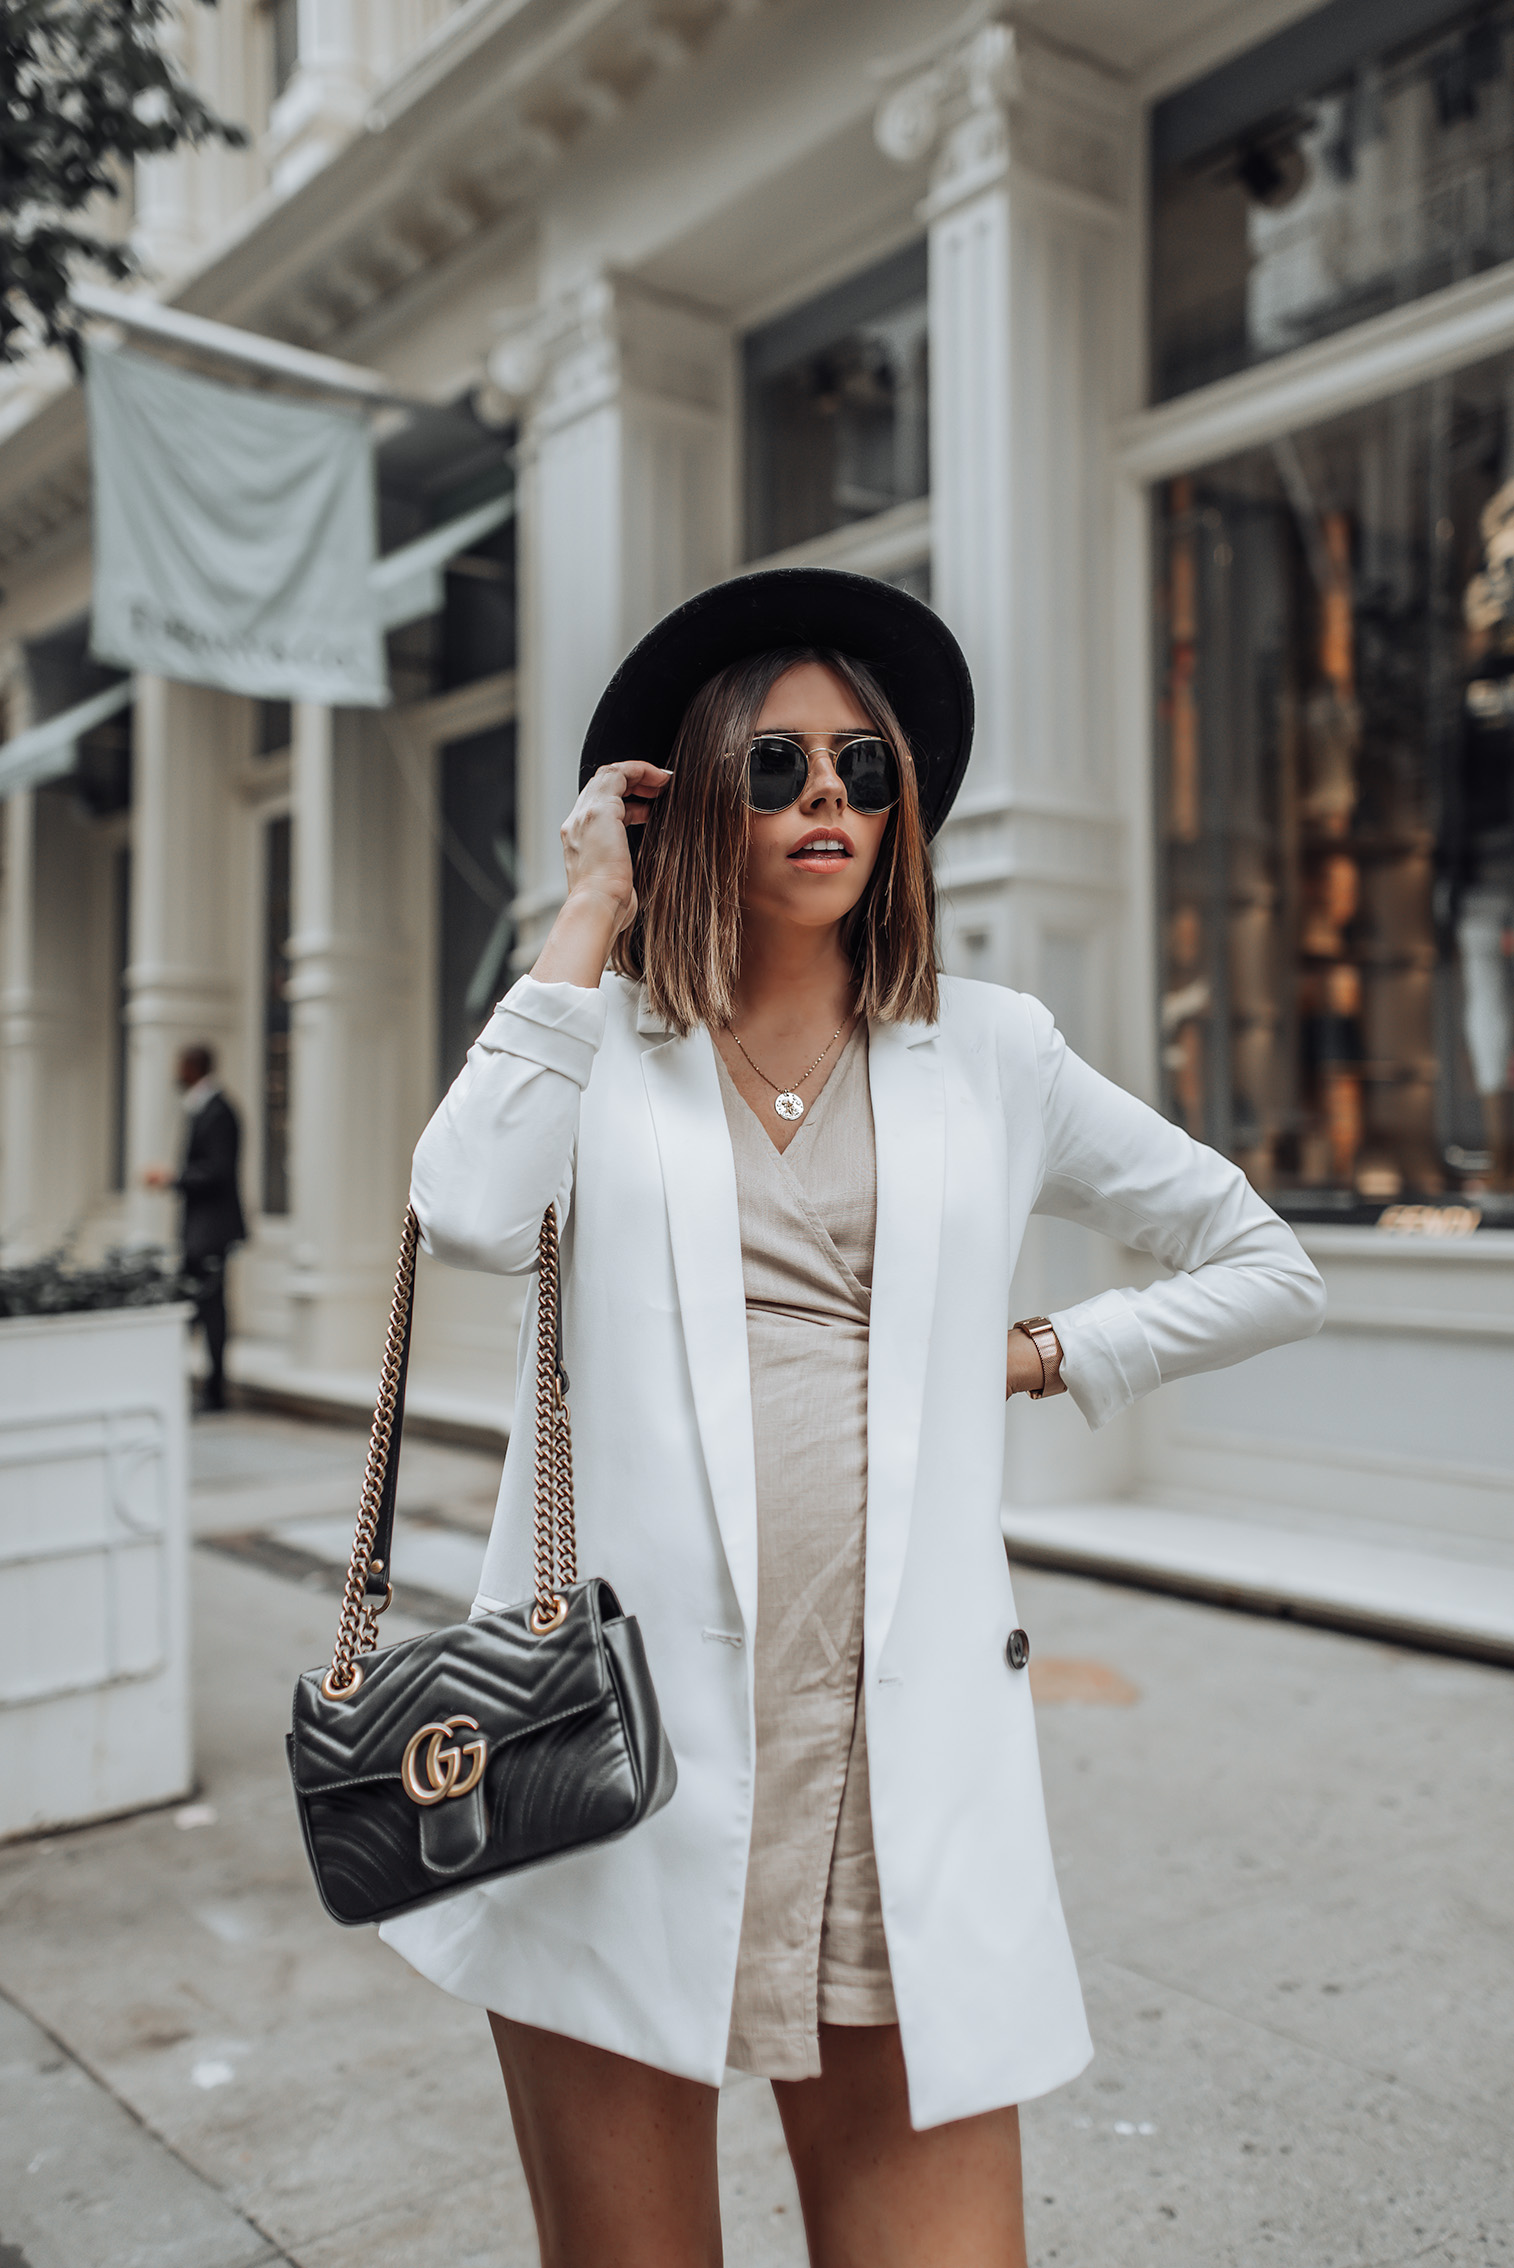 The perfect blazer | Brixton Hat | White Blazer | Tan Playsuit | Gucci Marmont Bag | Golden Goose Sneakers #ootd #streetstyle #gucci marmont